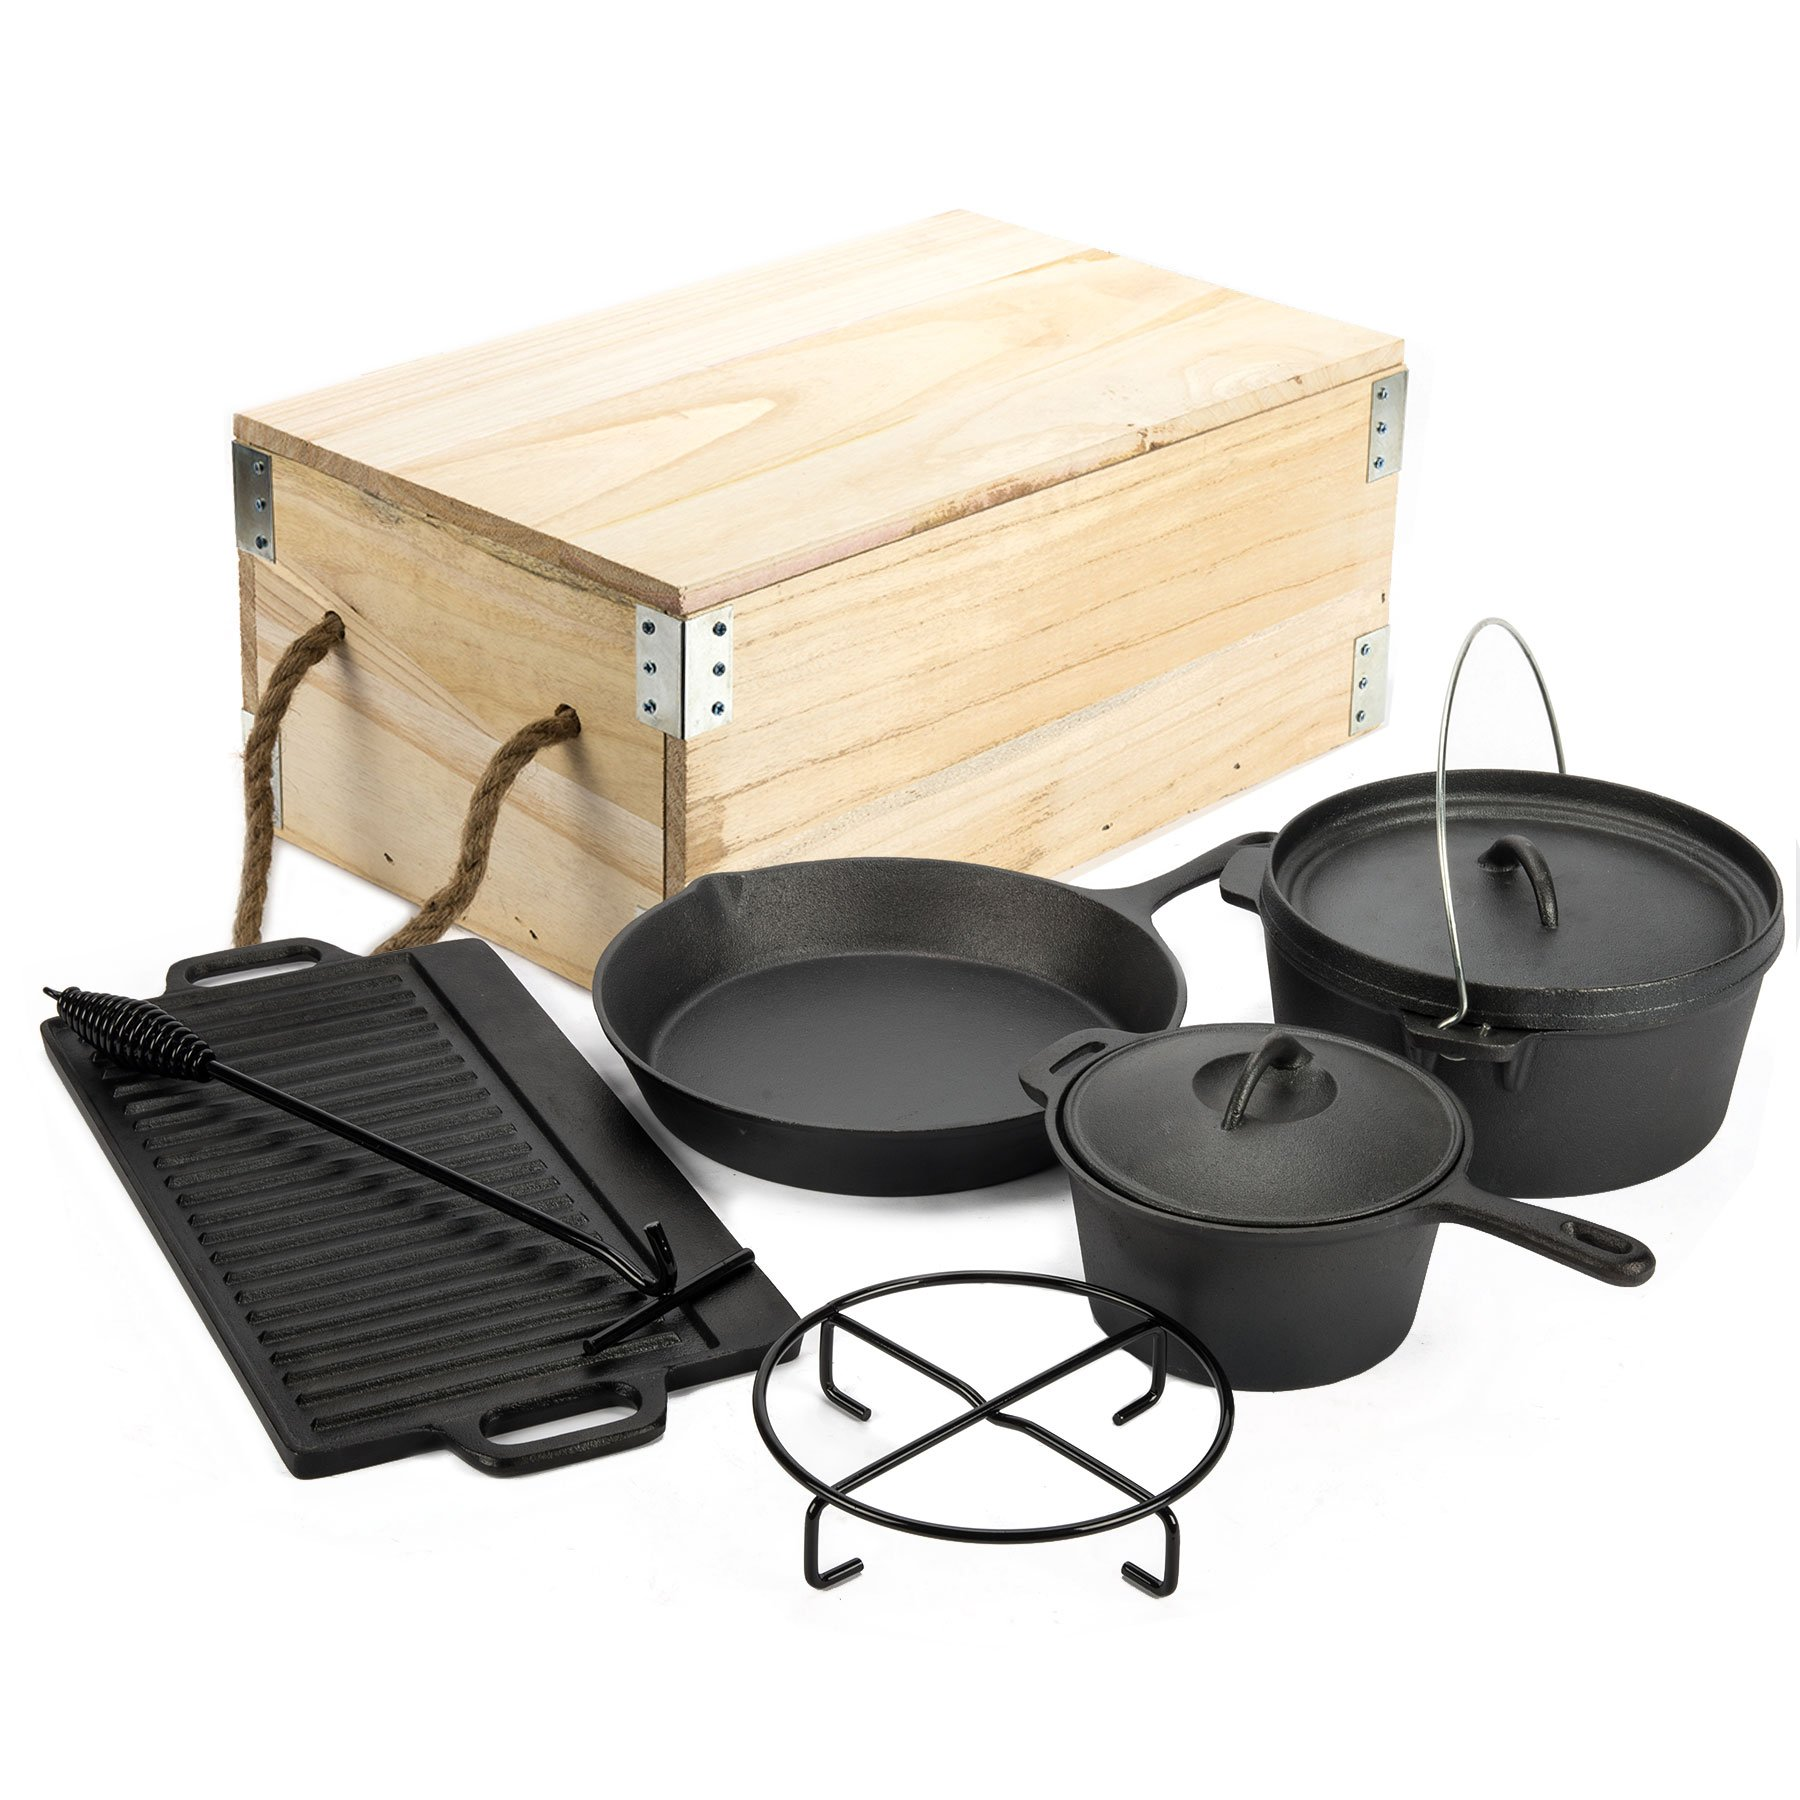 CO-Z Pre-Seasoned 7 Piece Heavy Duty Outdoor Camp Pot Cast Iron Cookware Set Including a Dutch Oven, a Large Skillet, a Sauce Pot, a Griddle, a Trivet and a Lid Lifter by CO-Z